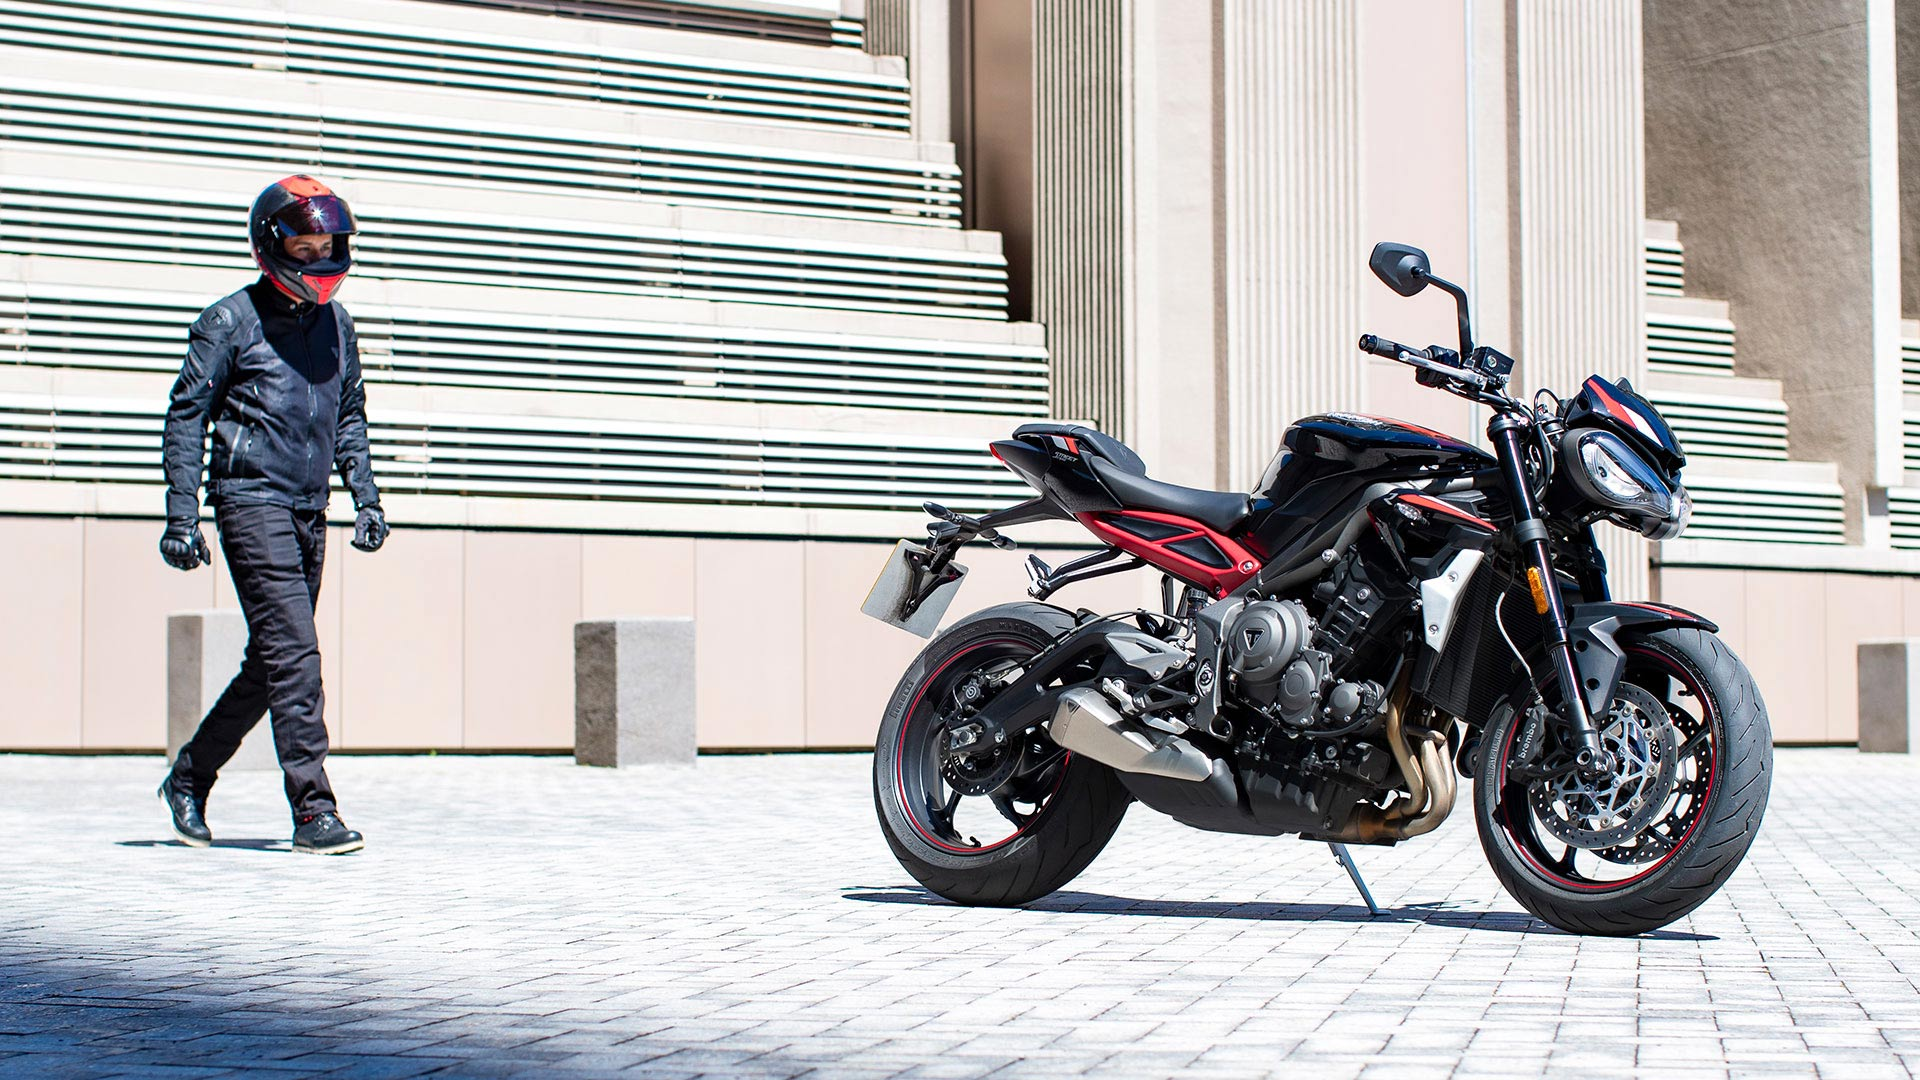 Street-Triple-R-Variant-Page---Gallery-5-1920x1080px